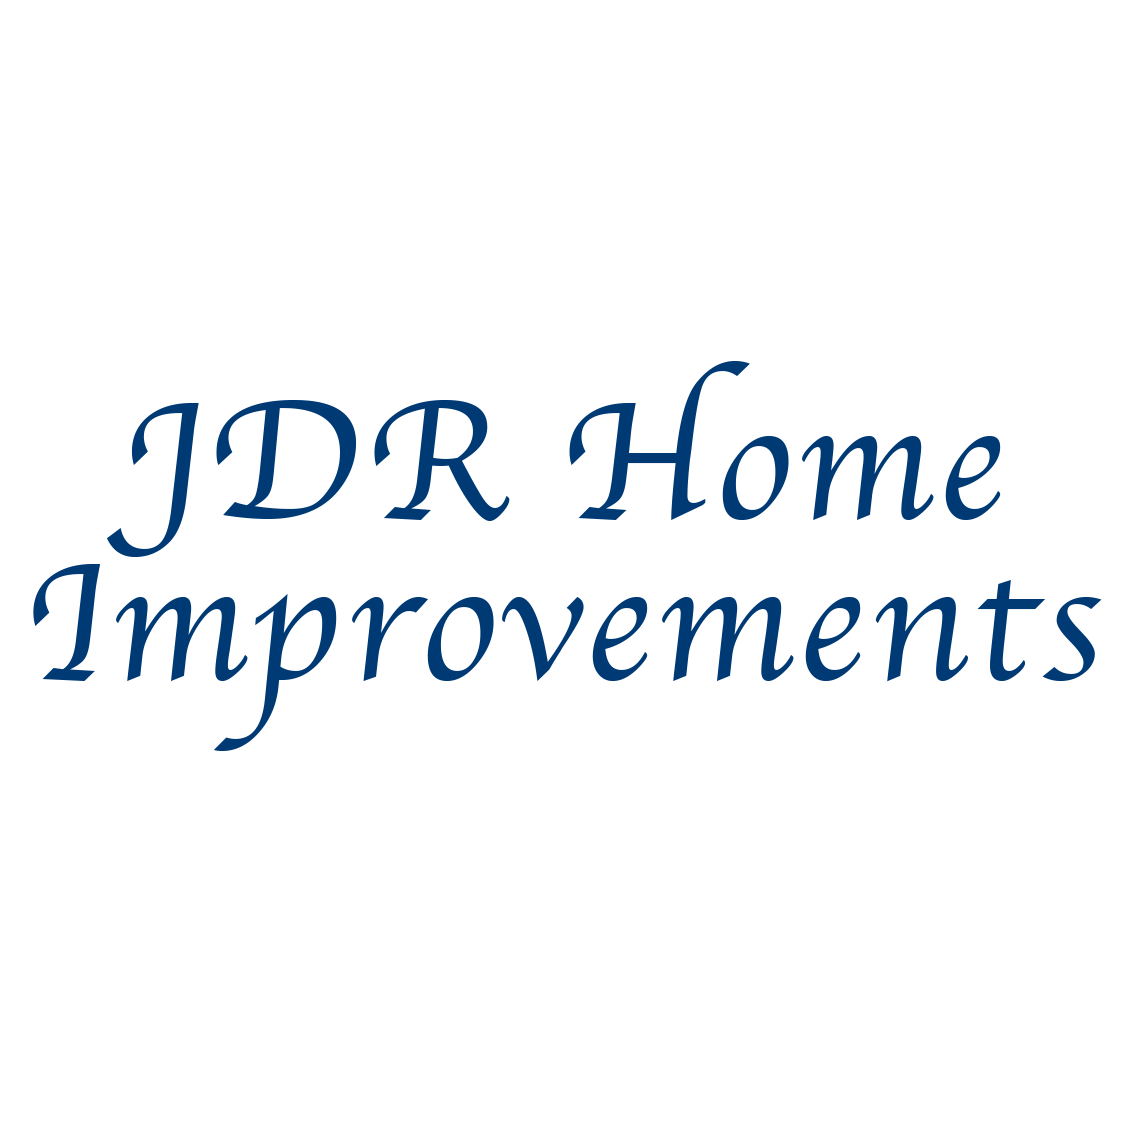 JDR Home Improvements